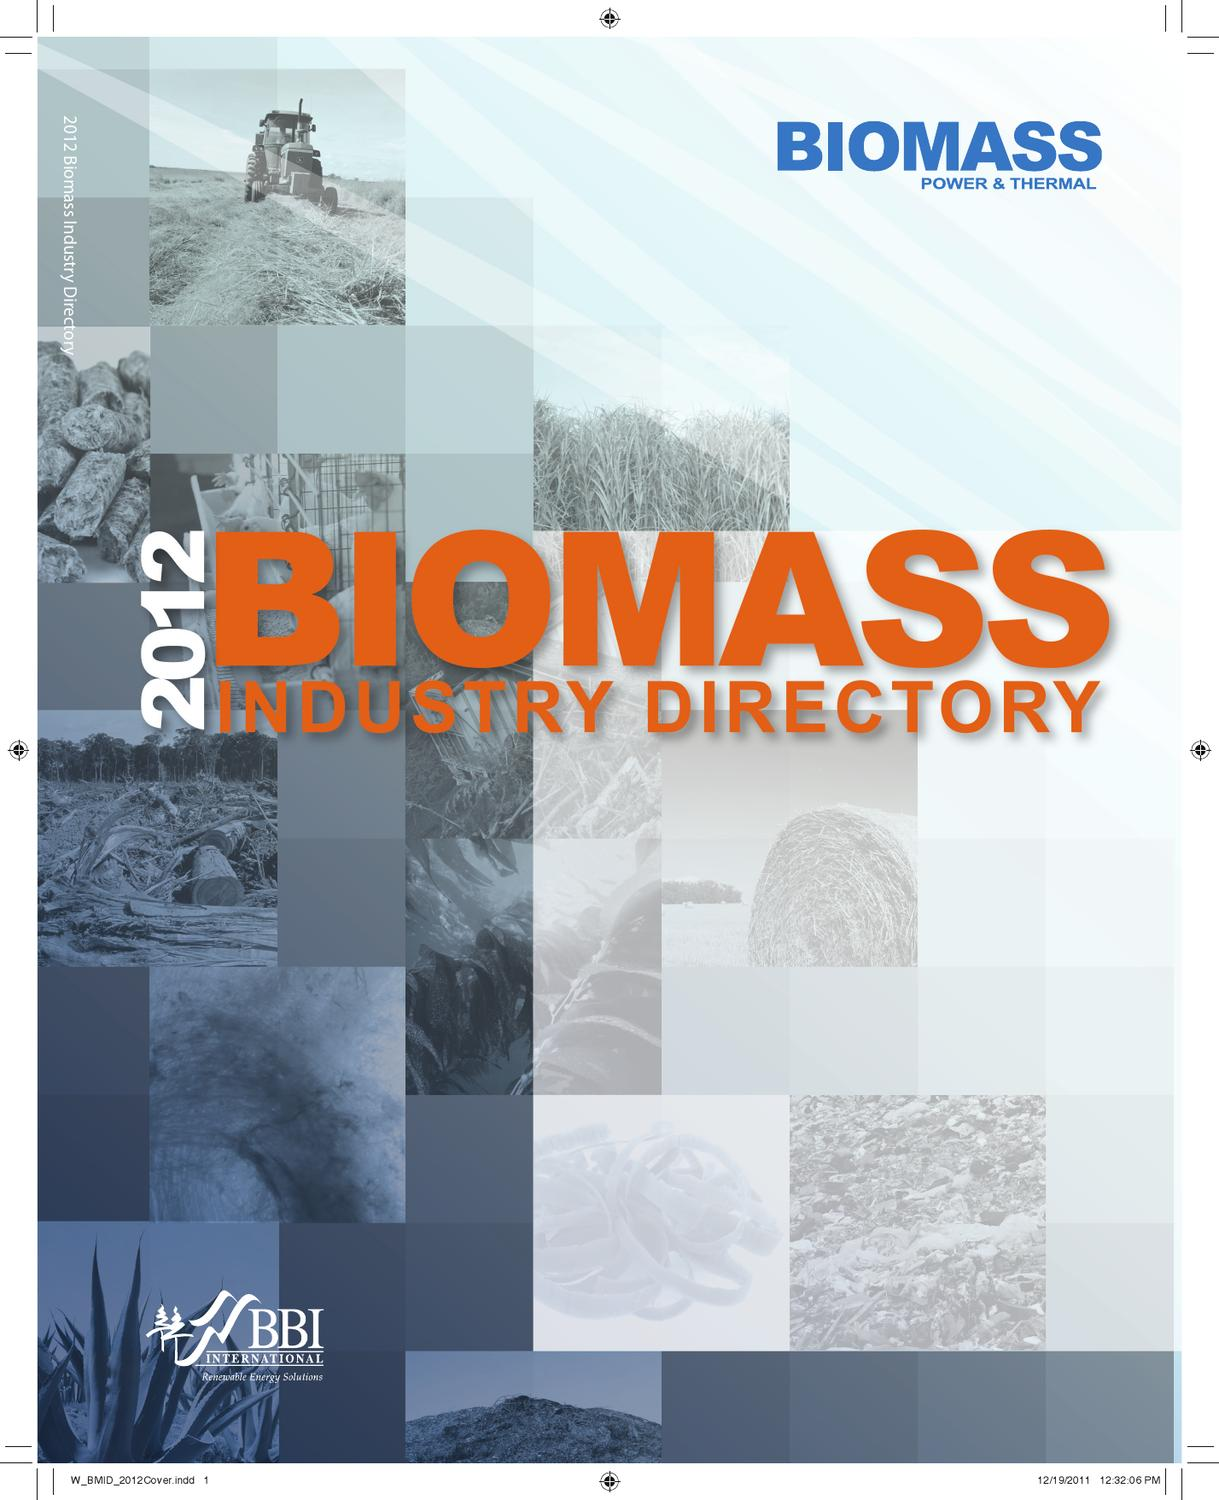 2012 Biomass Industry Directory by BBI International - issuu